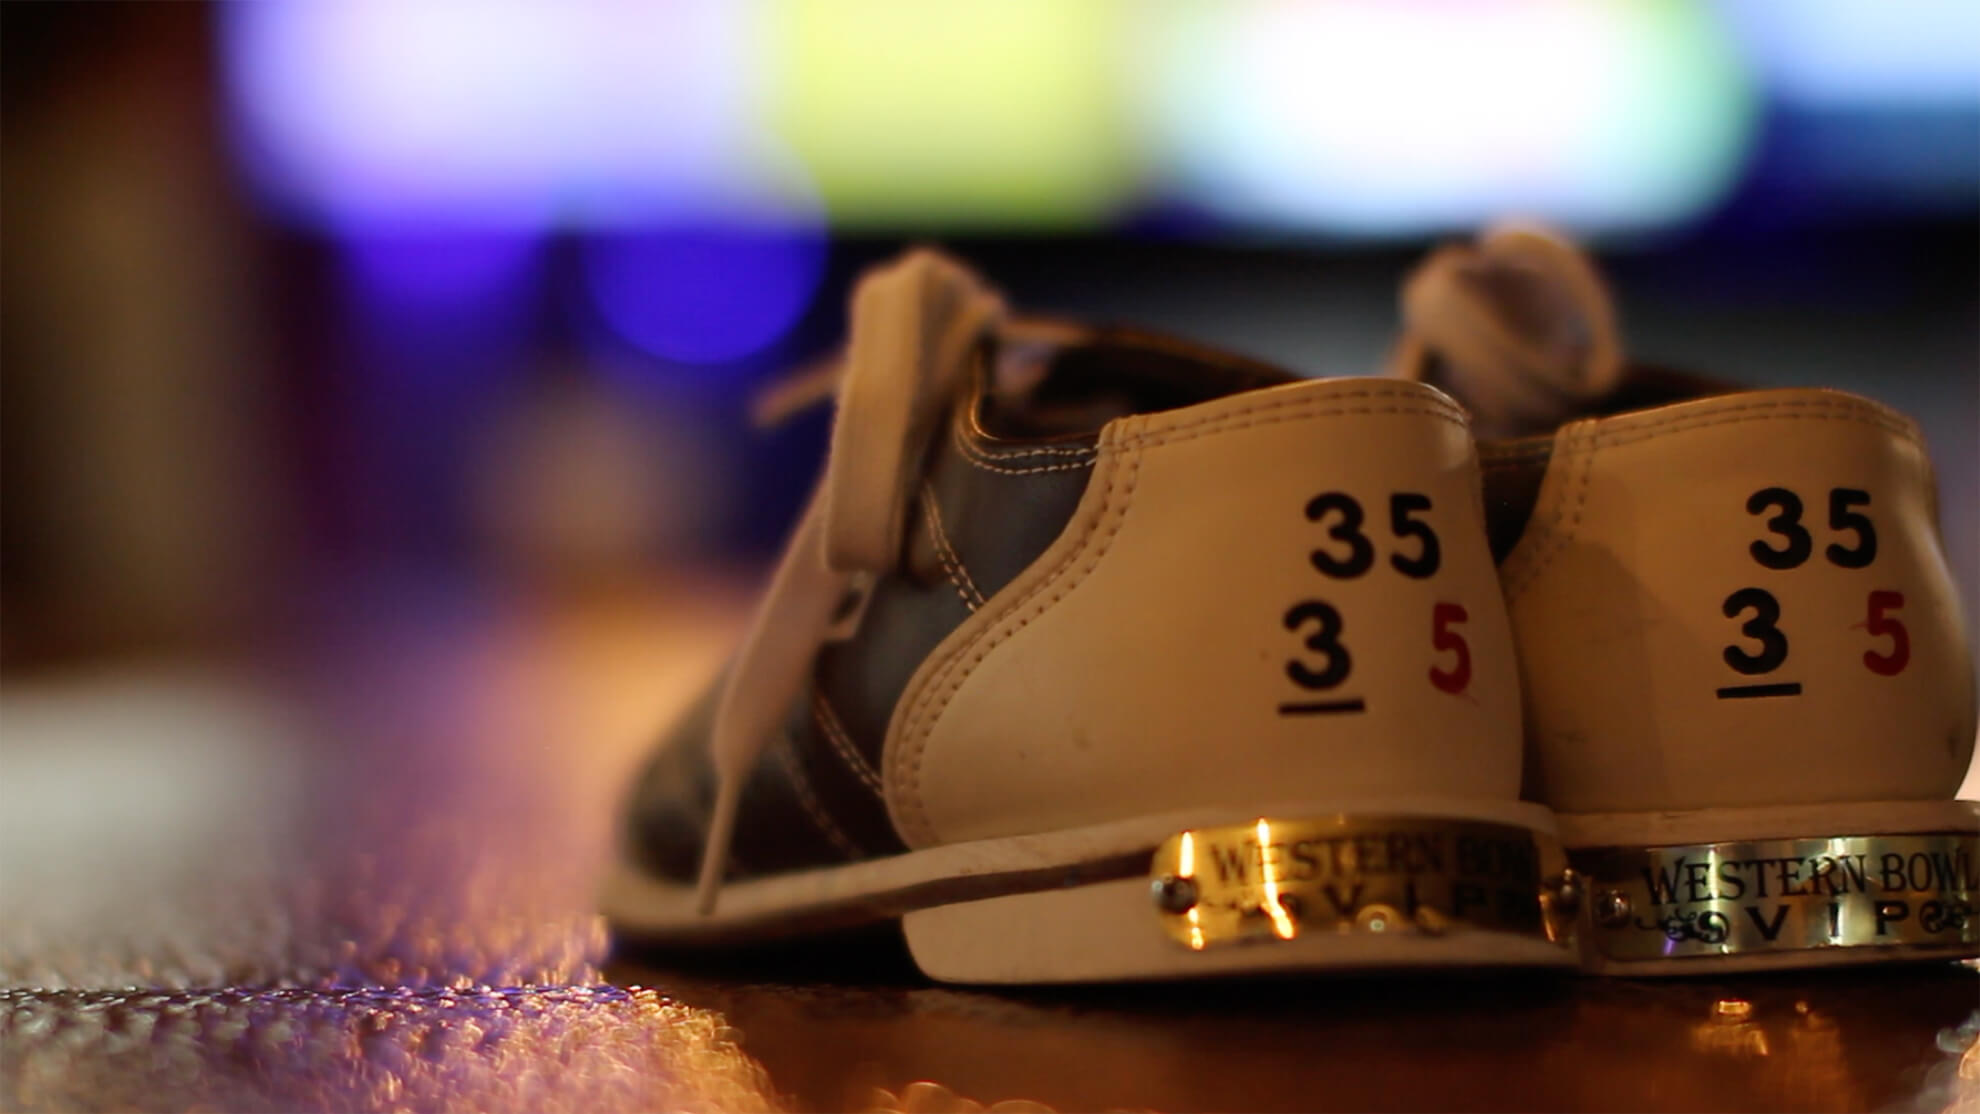 vip shoes western bowl